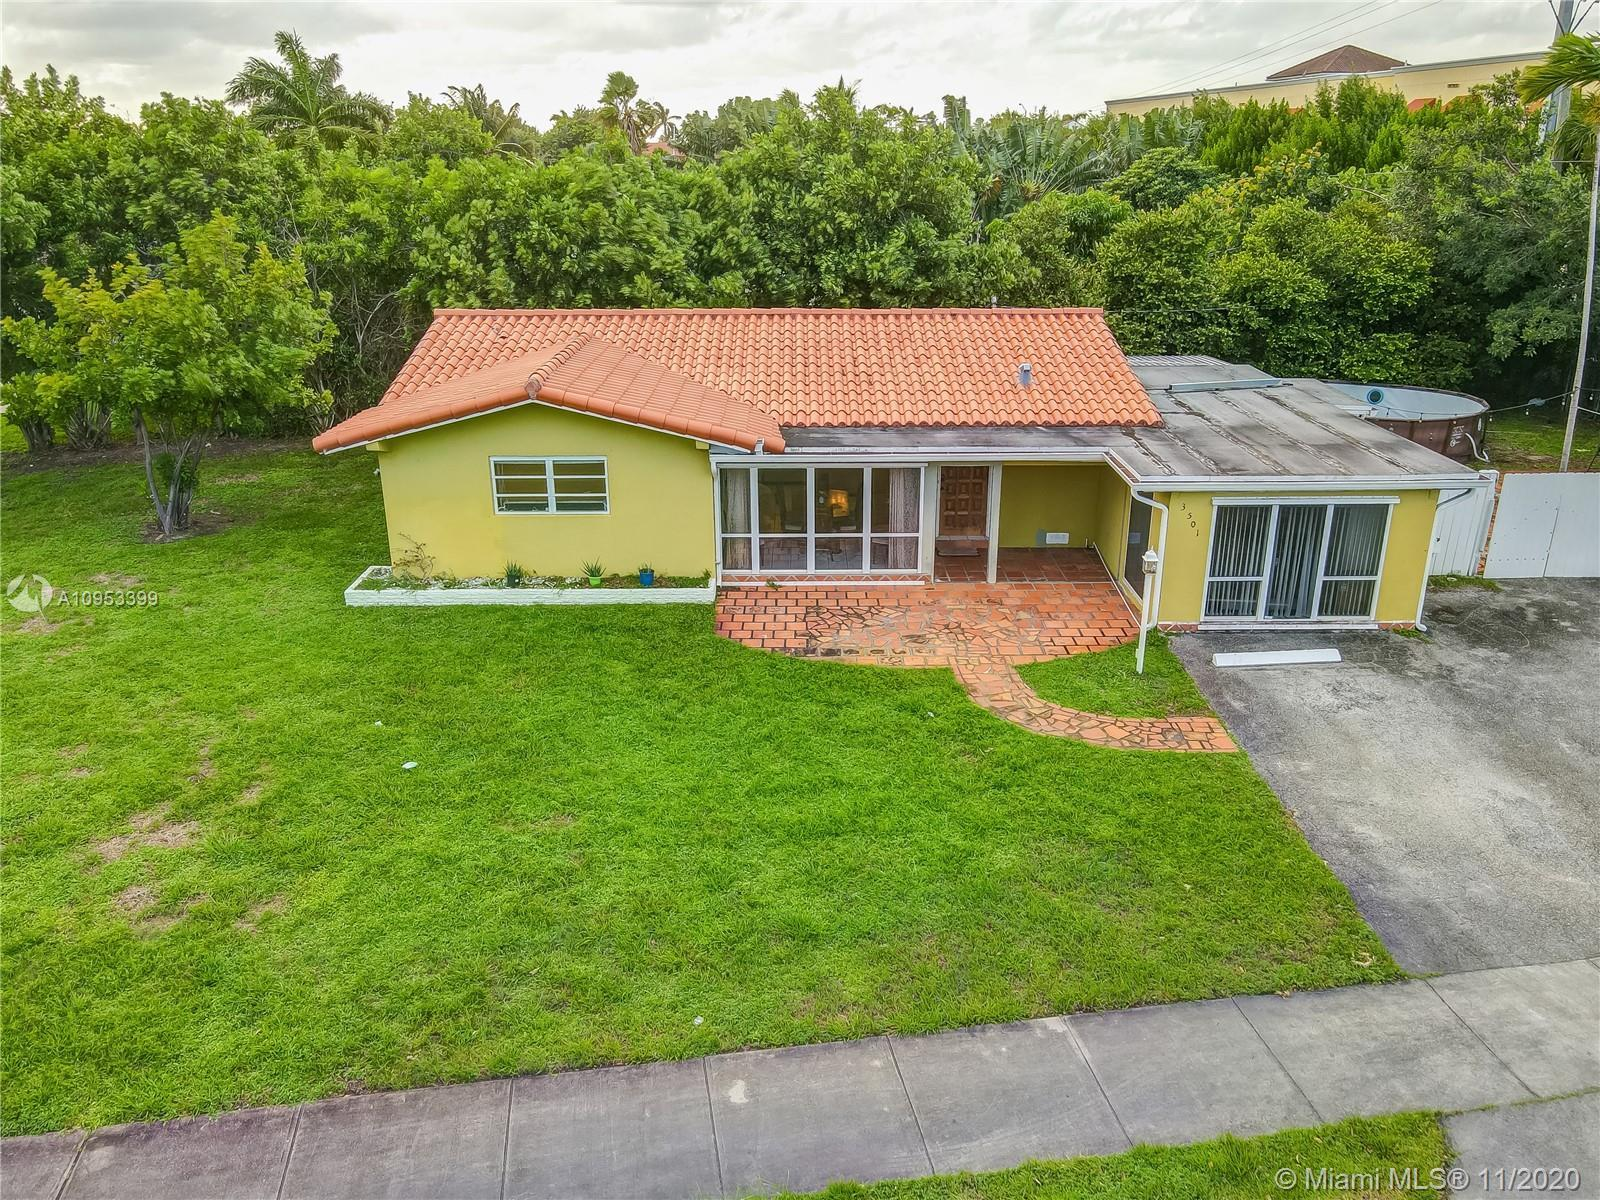 3501 NE 21st Ave, Lighthouse Point, FL, 33064